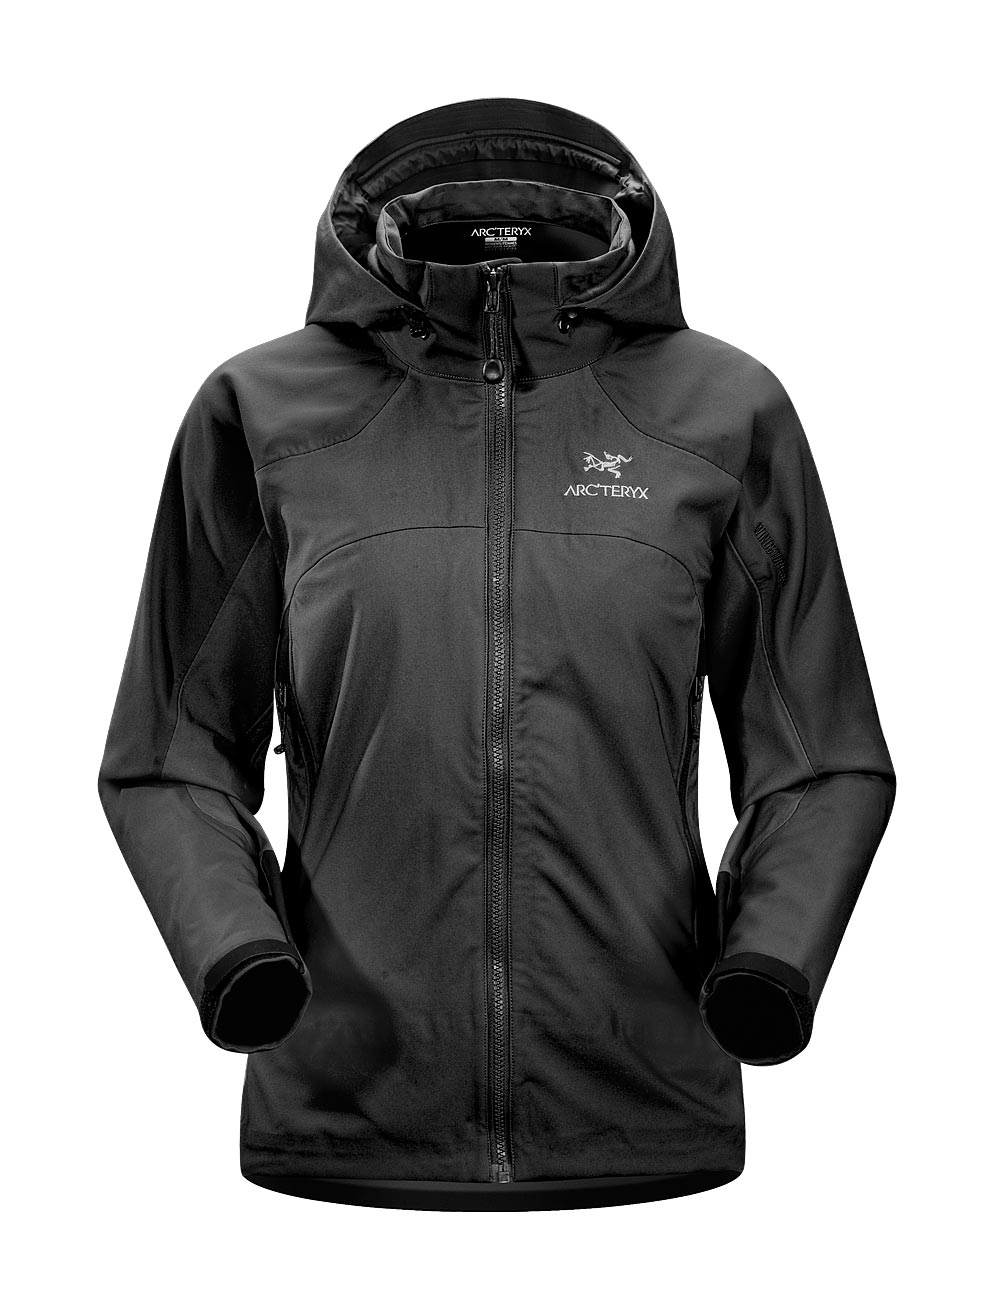 Arcteryx Jackets Women Black Venta SV Jacket